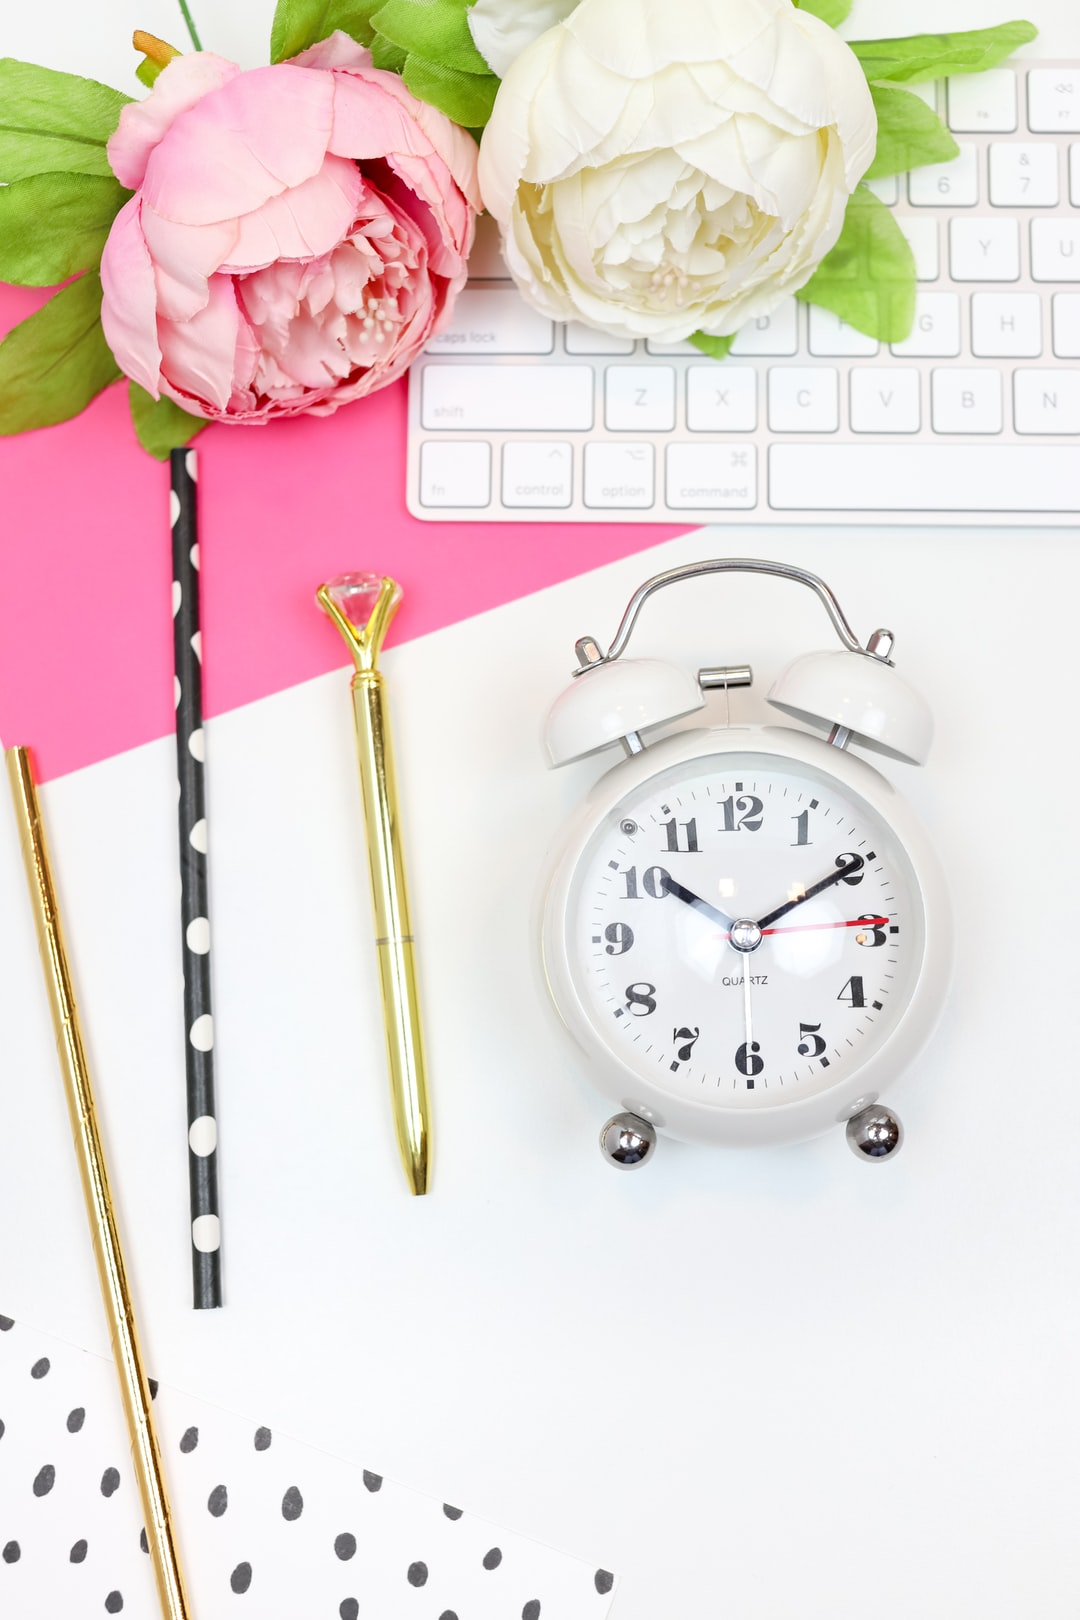 This feminine styled stock photo perfect for lady bosses features hot pink and black props with a white desk, a keyboard, pink and black notecards, pens, a clock, and more.